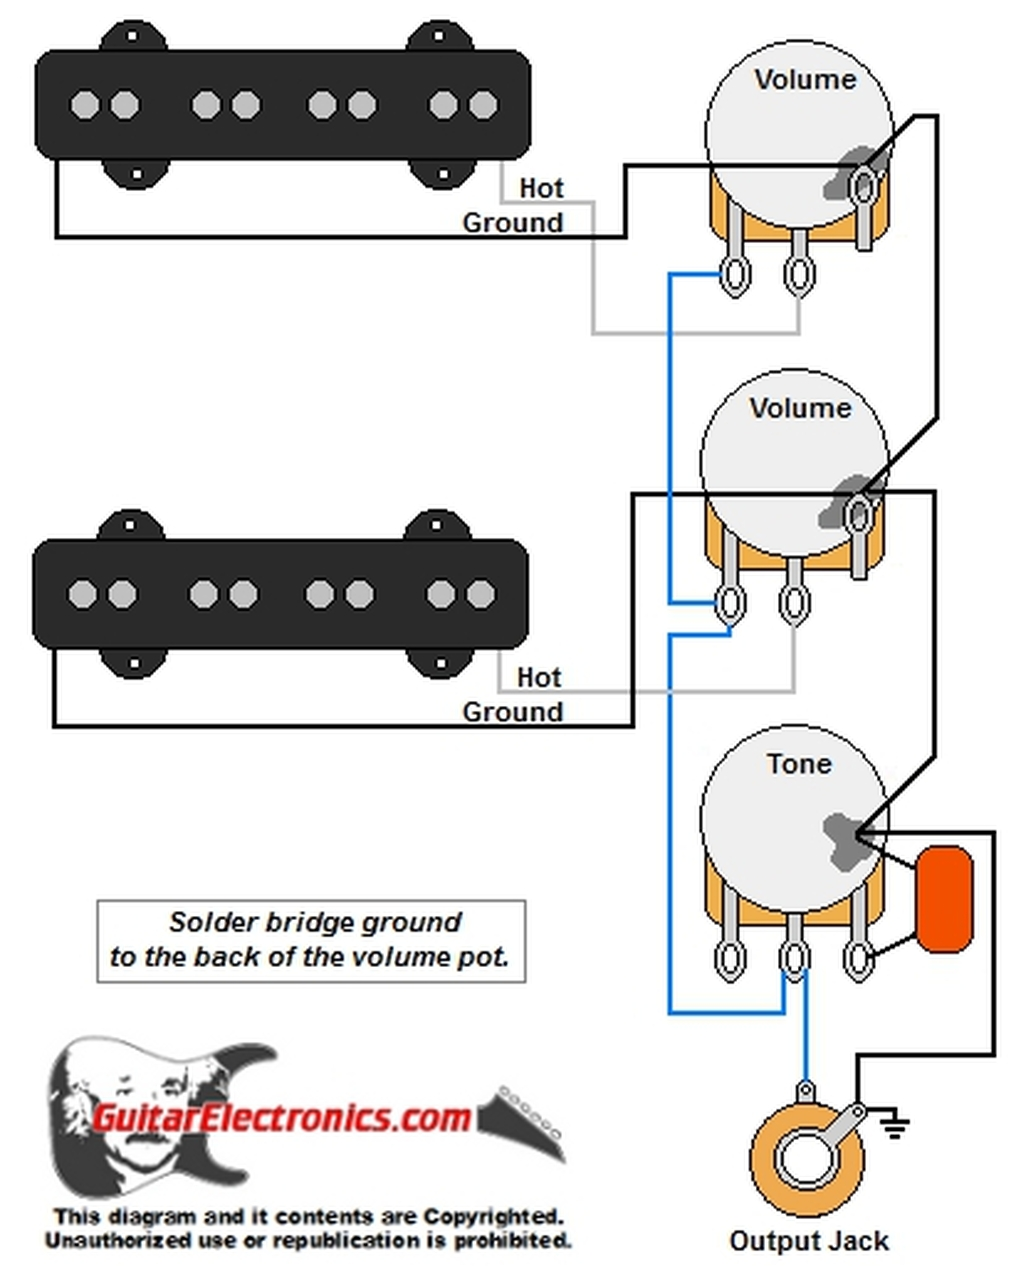 Jazz Bass Style Wiring Diagram | Guitar Electronics Wiring Diagrams |  | Guitar Electronics